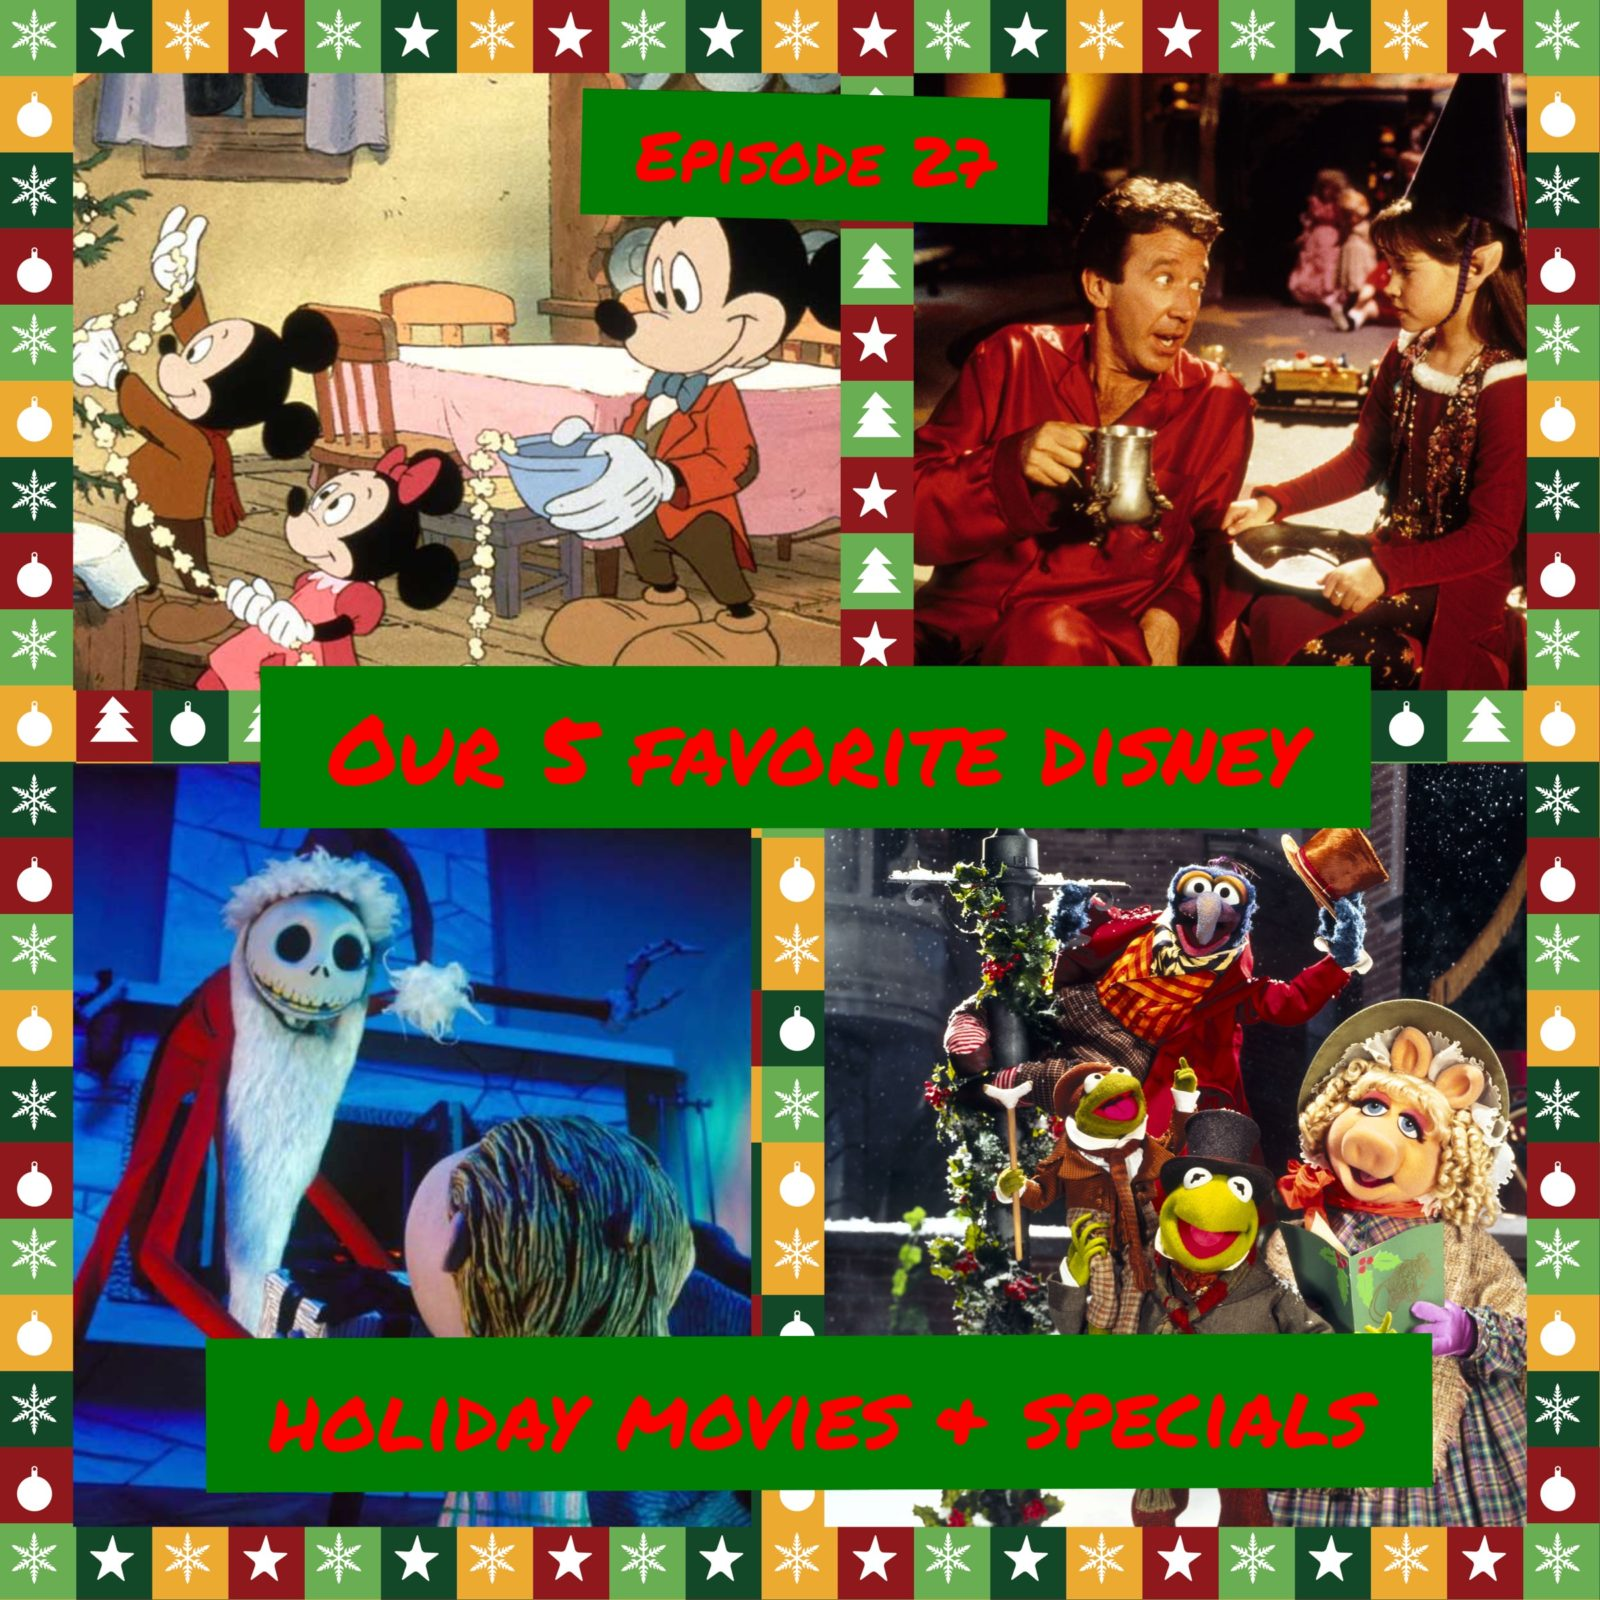 Episode 27 - Our 5 Favorite Disney Holiday Movies and Specials